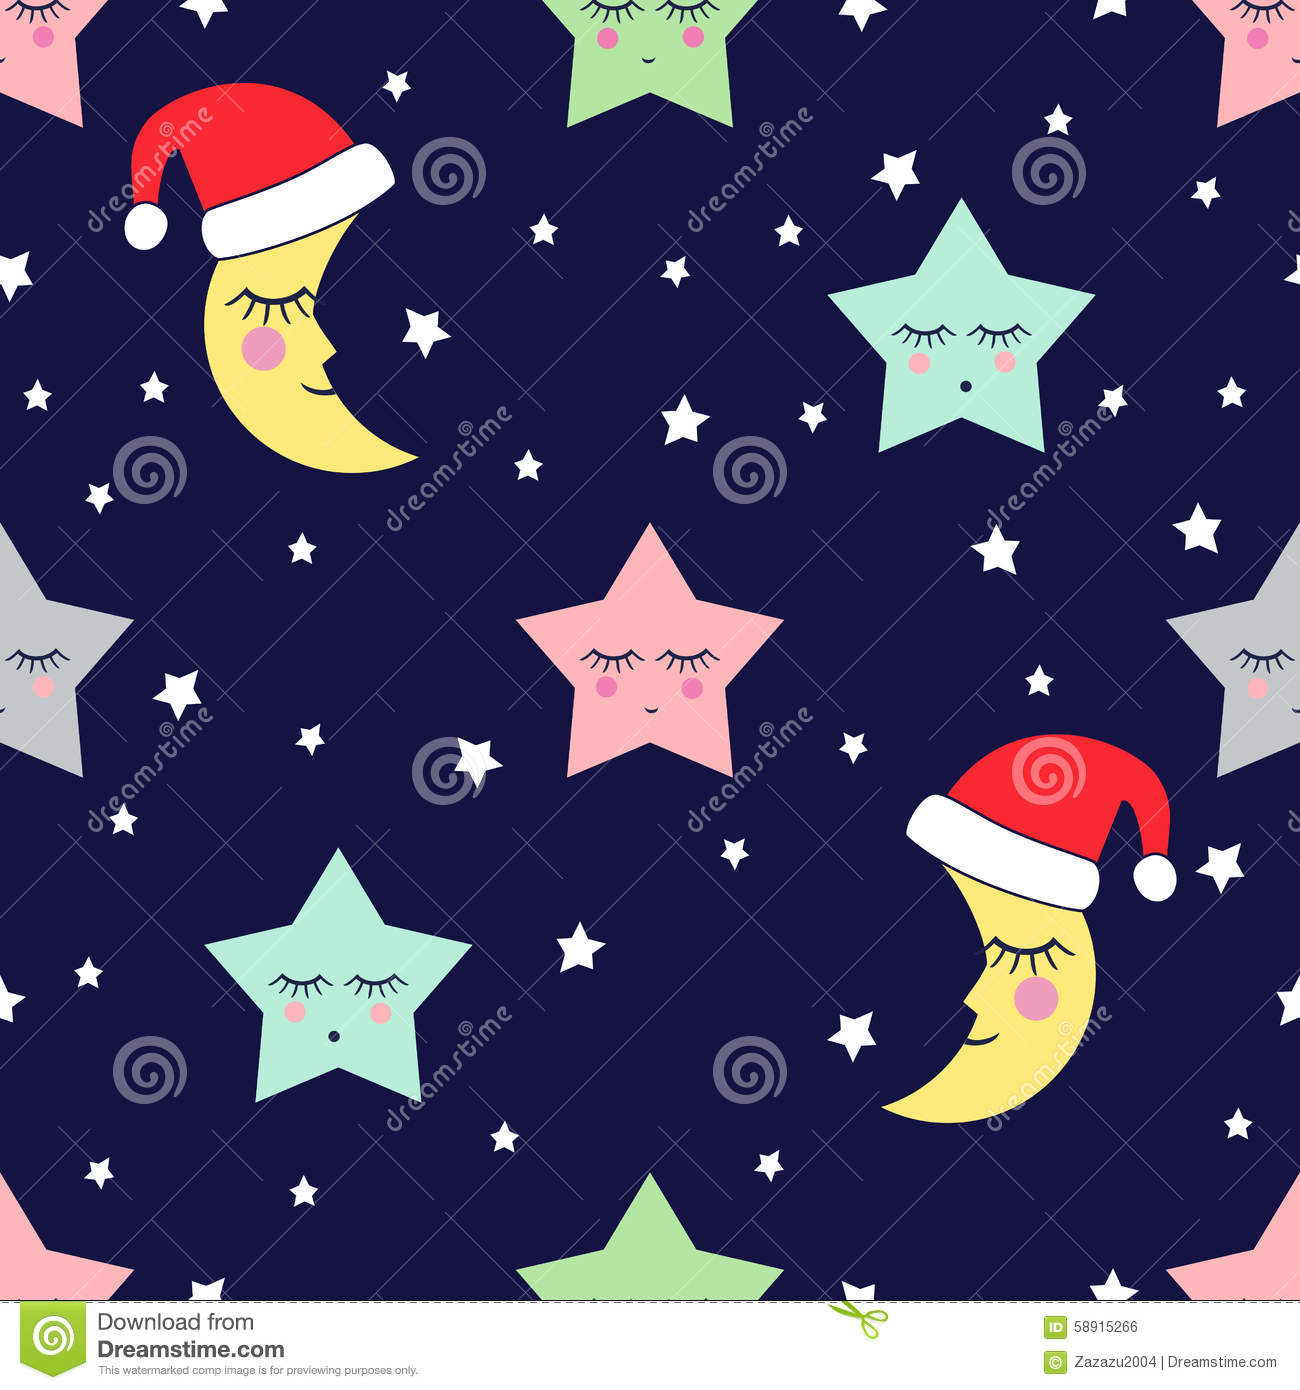 Cow Wallpaper Cute Seamless Pattern With Sleeping Stars And Moon With Santa